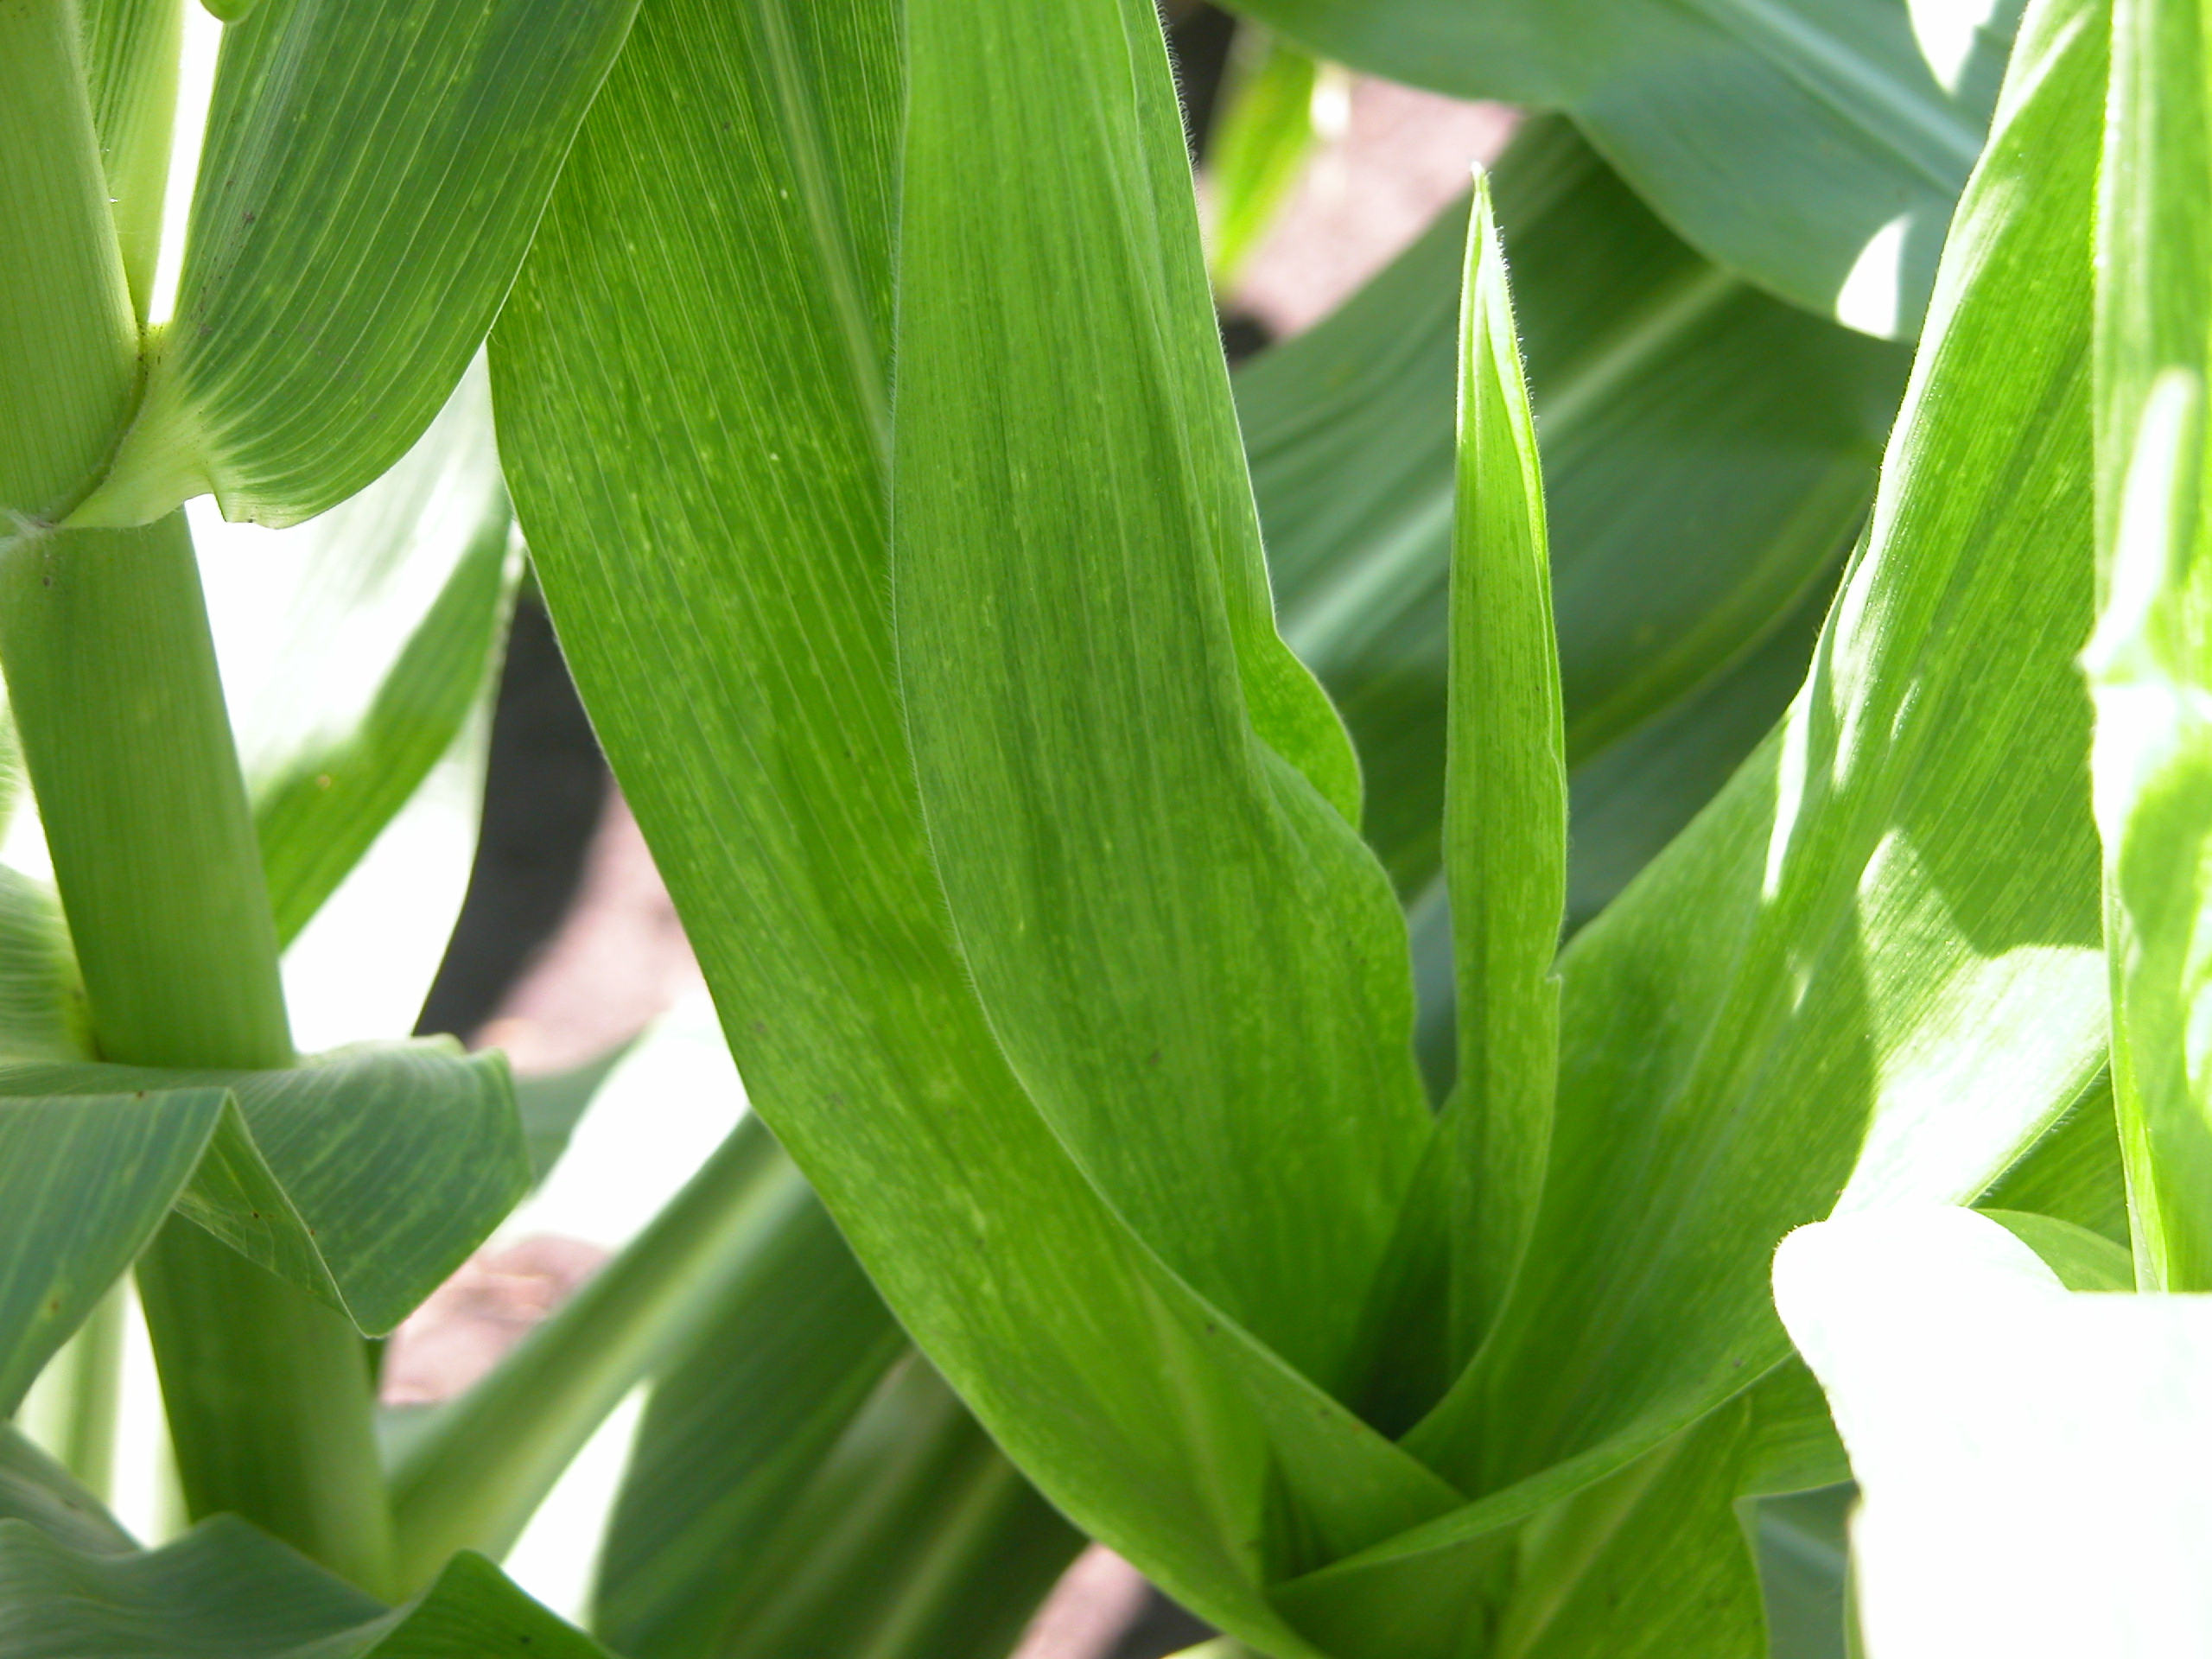 Leaf discoloration from maize dwarf mosaic.